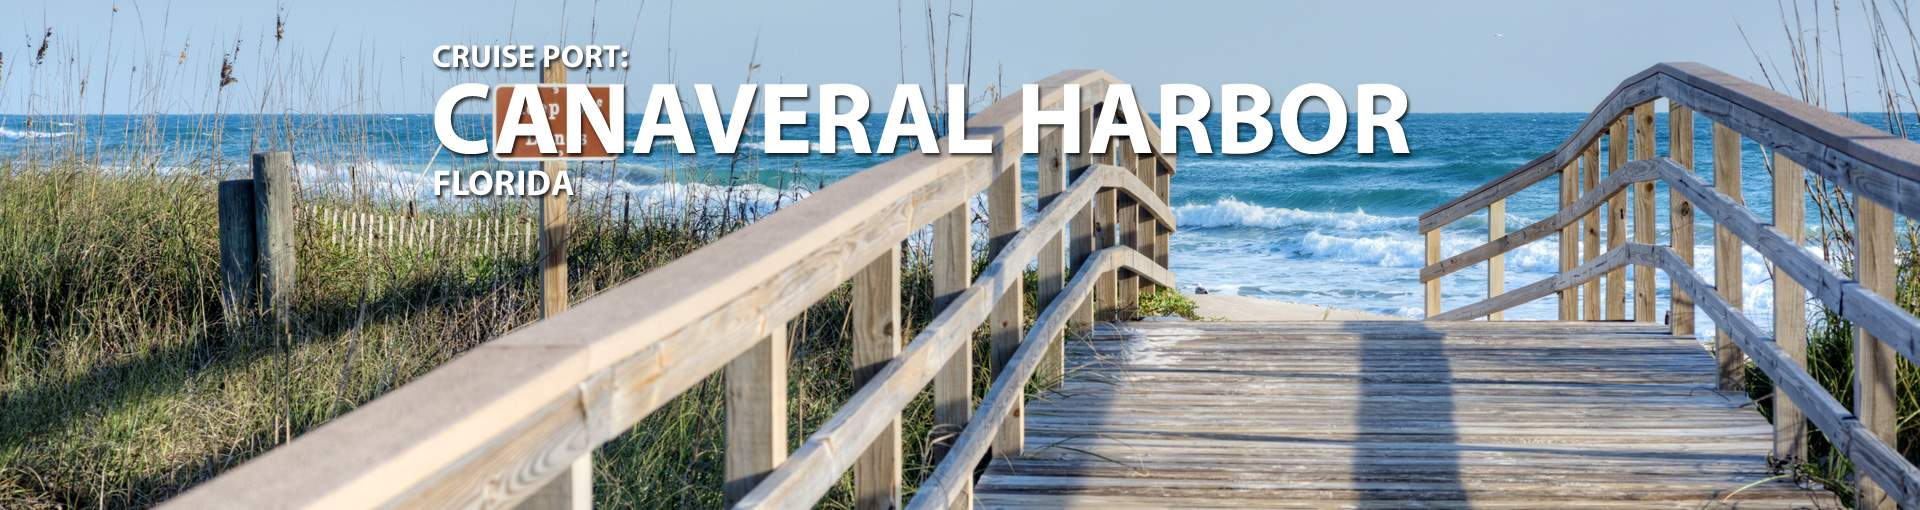 Cruises to Canaveral Harbor, Florida